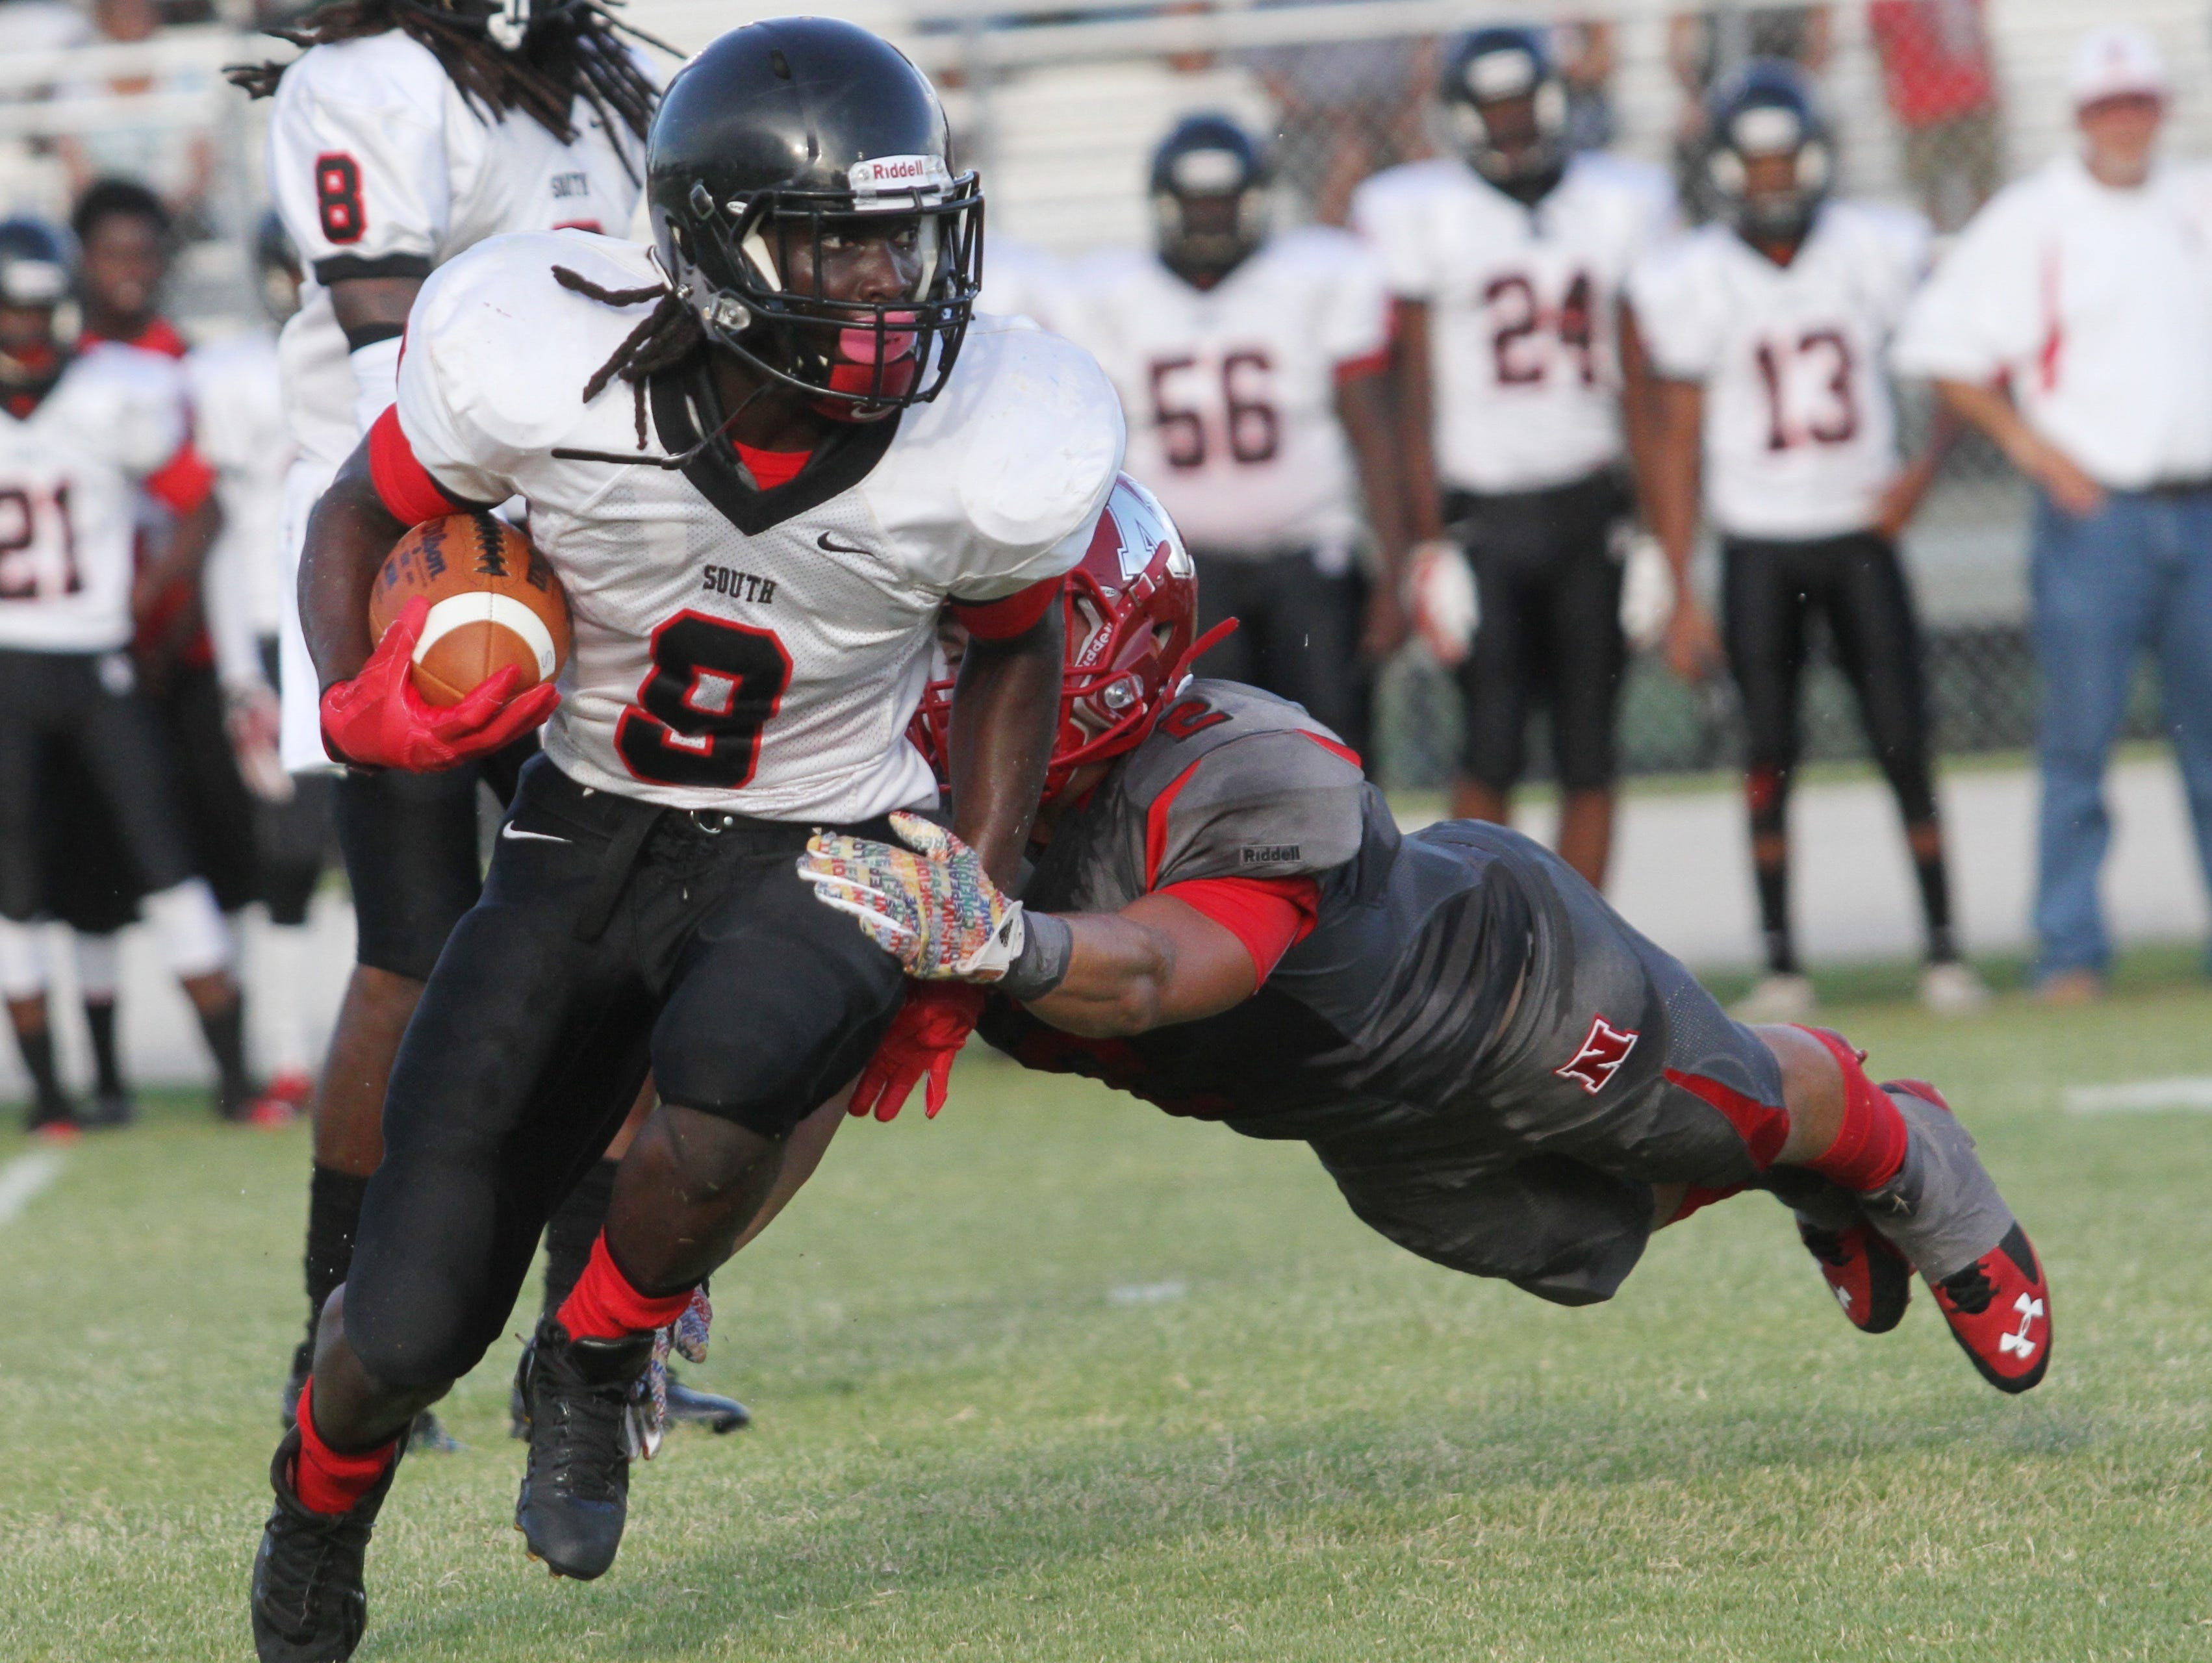 E'Quan Dorris and South Fort Myers host Island Coast in Week 1.